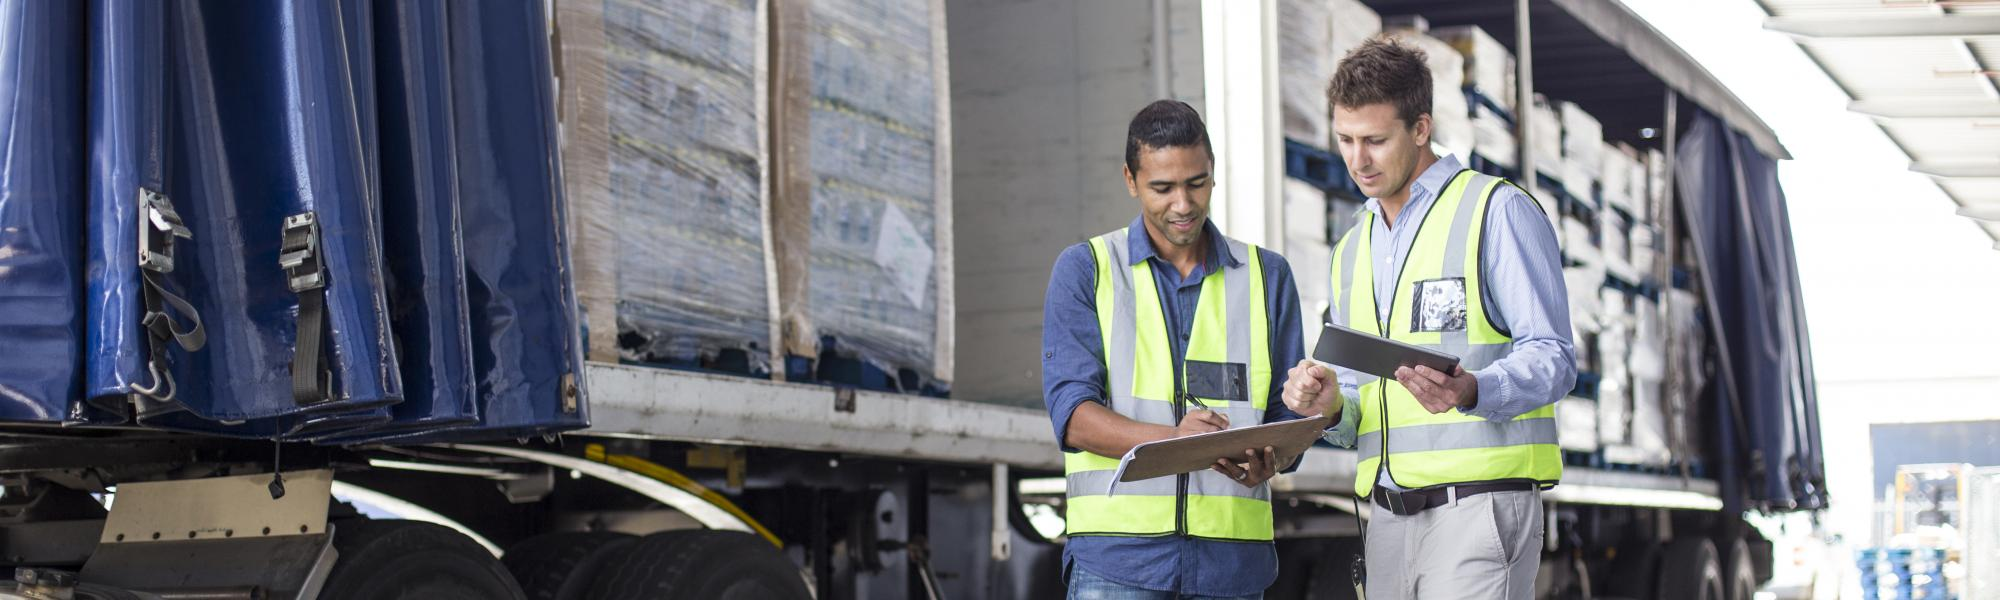 Milestone for road transport companies to digitalise further within reach